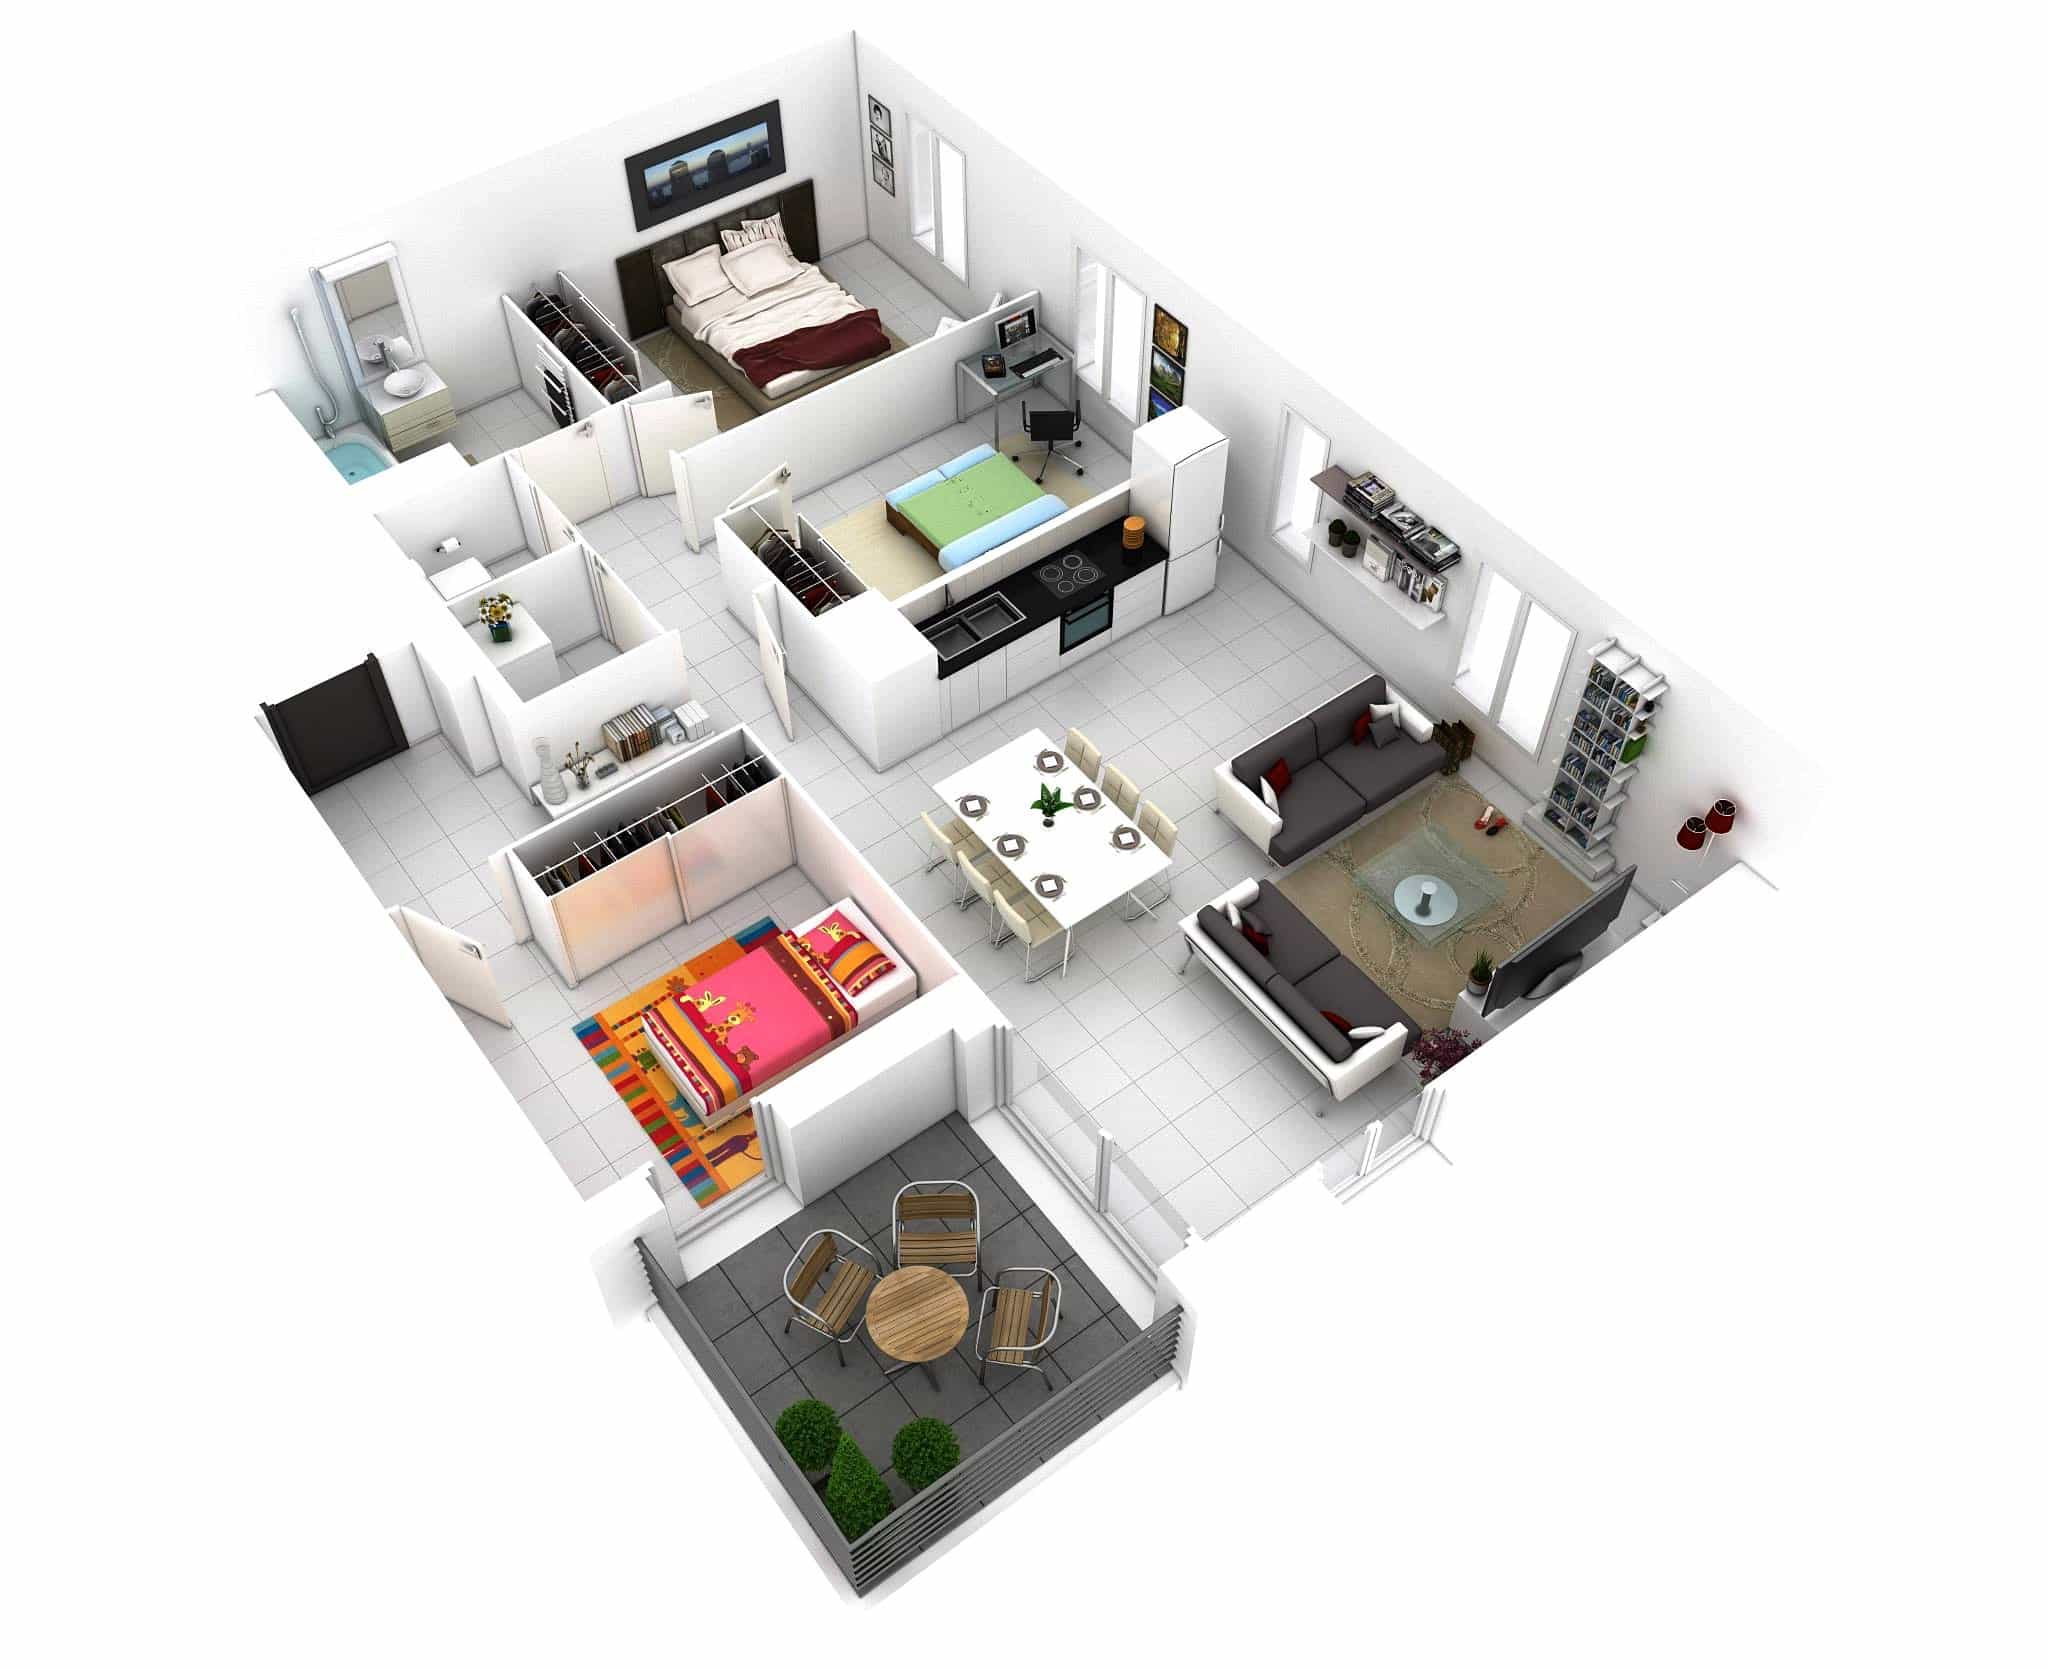 Layout design house -  Design House Layout 3d Three Bedroom House Layout Design Plans 23034 Interior Ideas